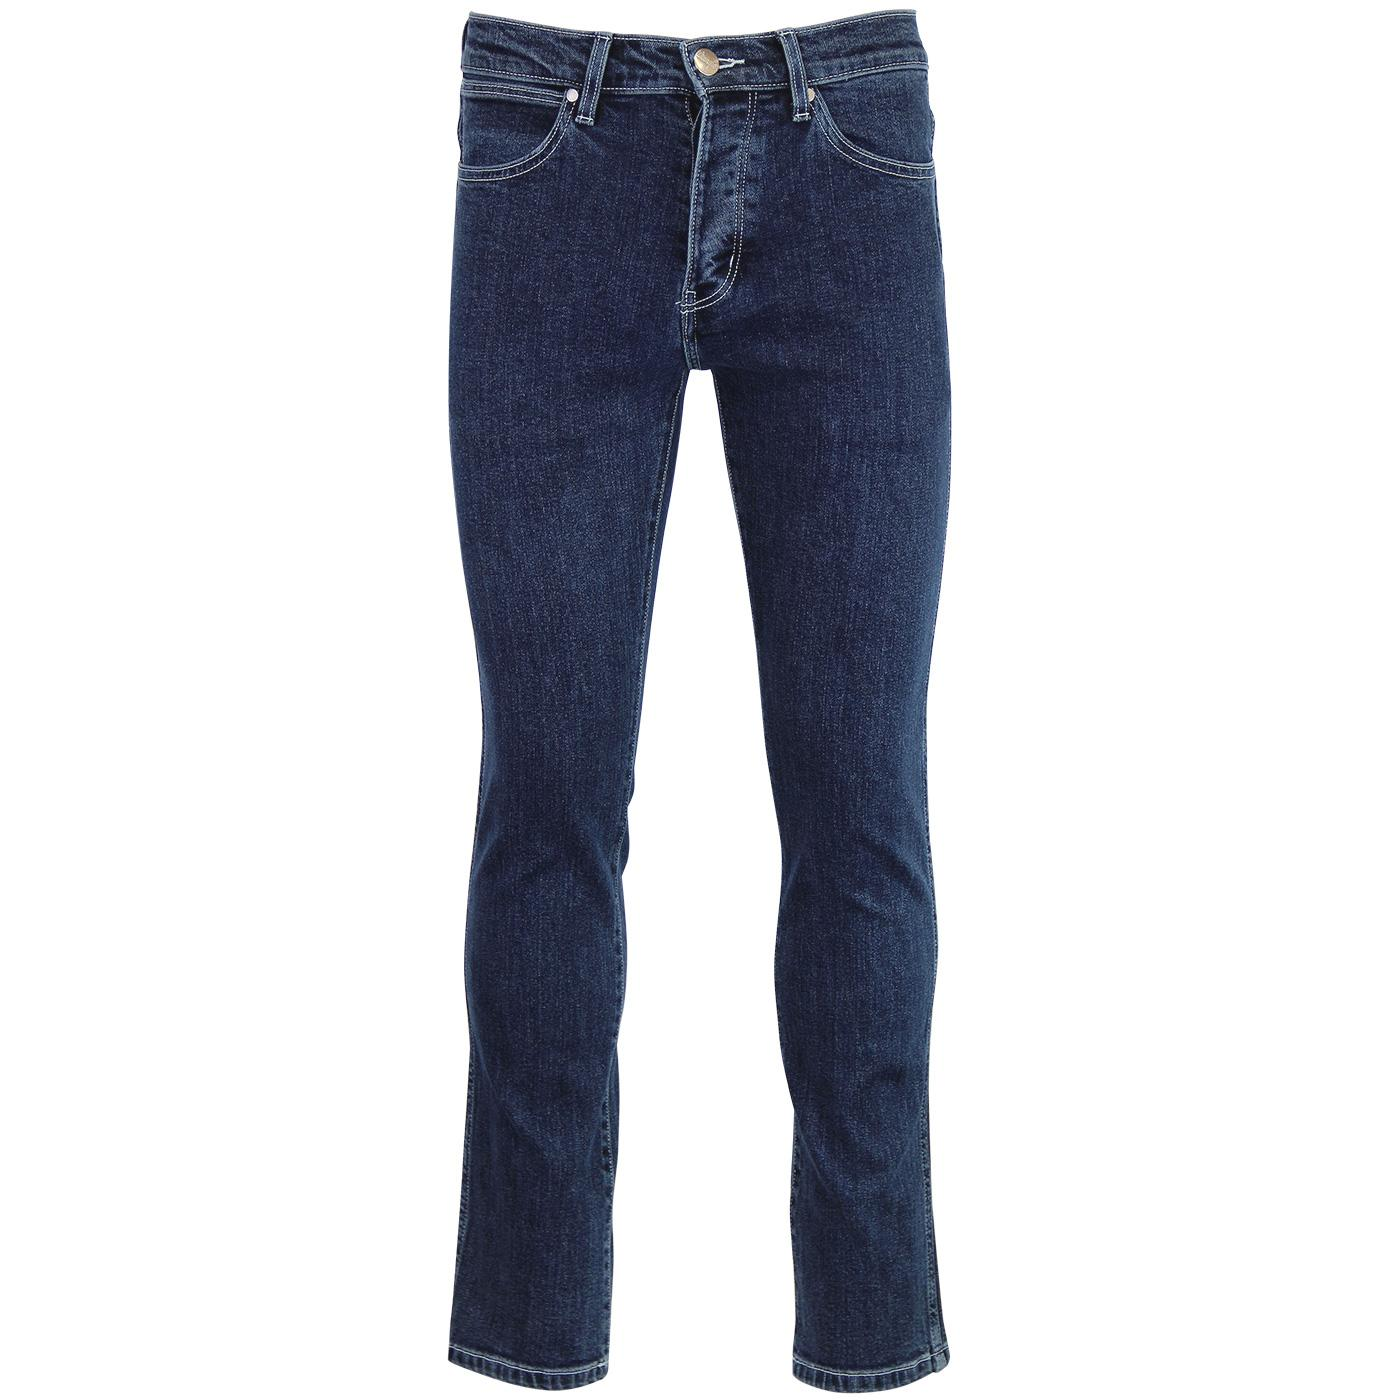 fa7f09f08a0 WRANGLER Spencer Retro Mod Denim Jeans in Stony Creek